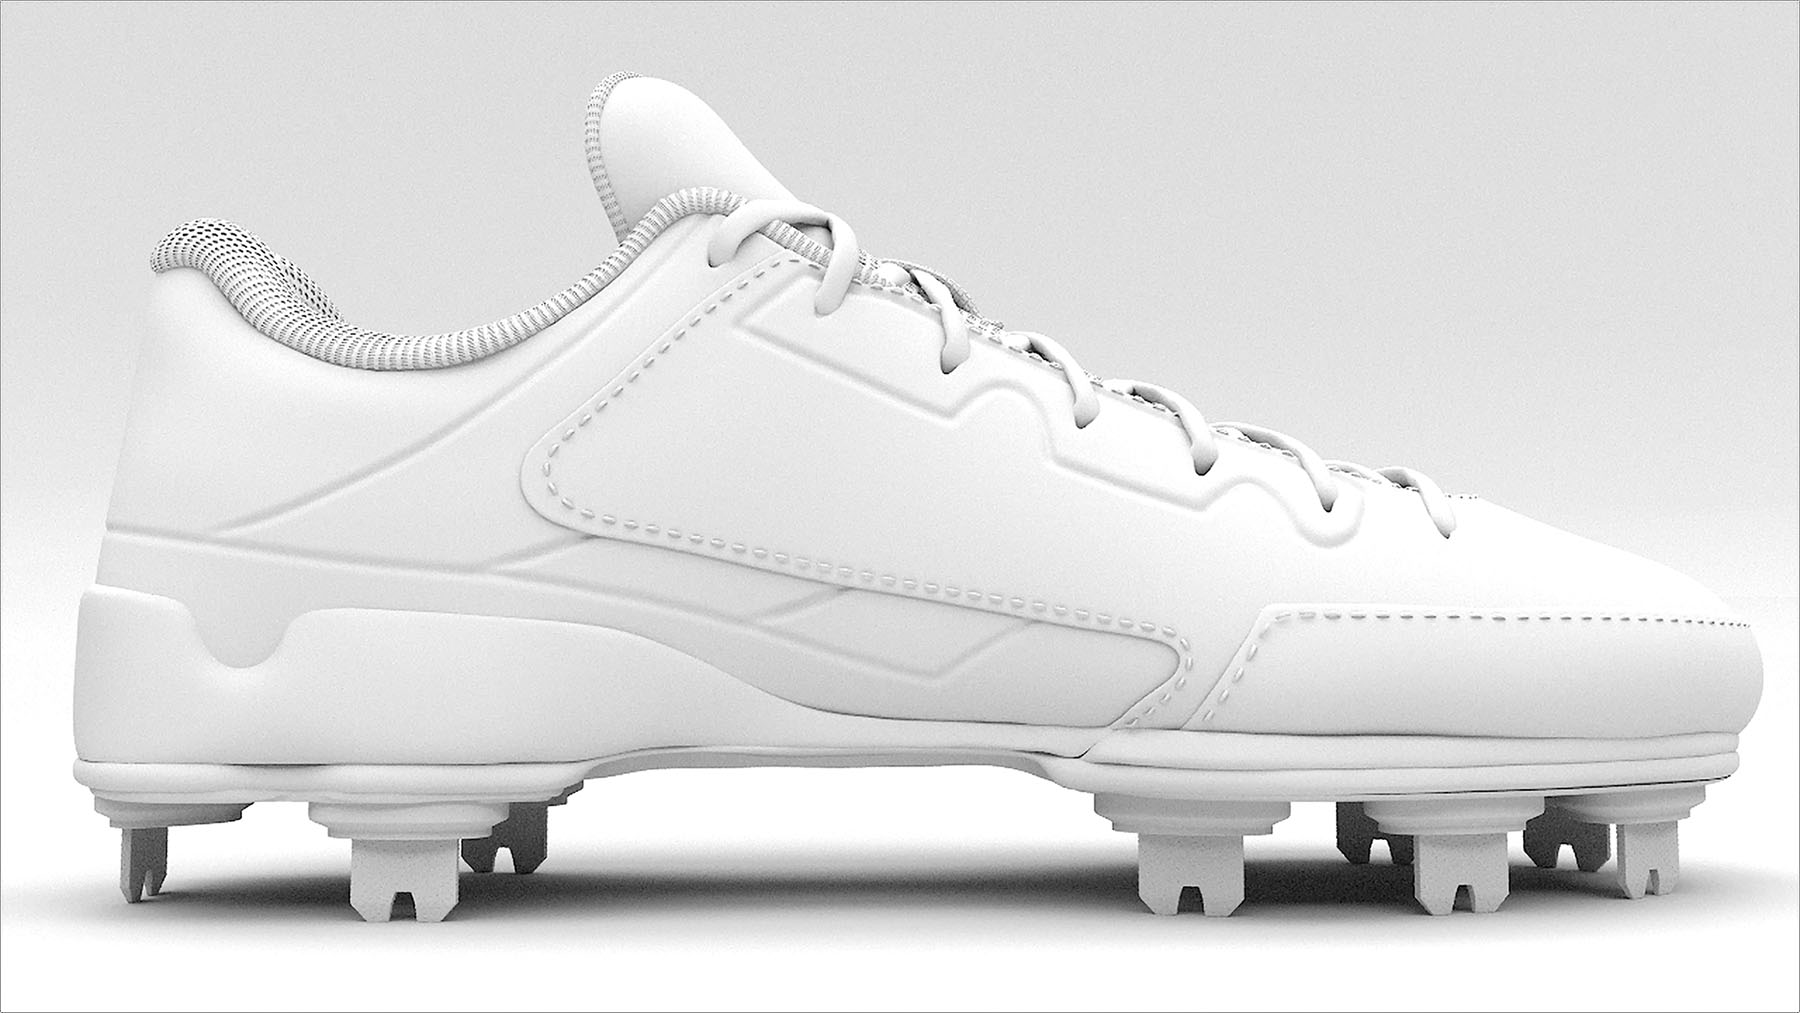 Cleats_GreyScale_small.jpg